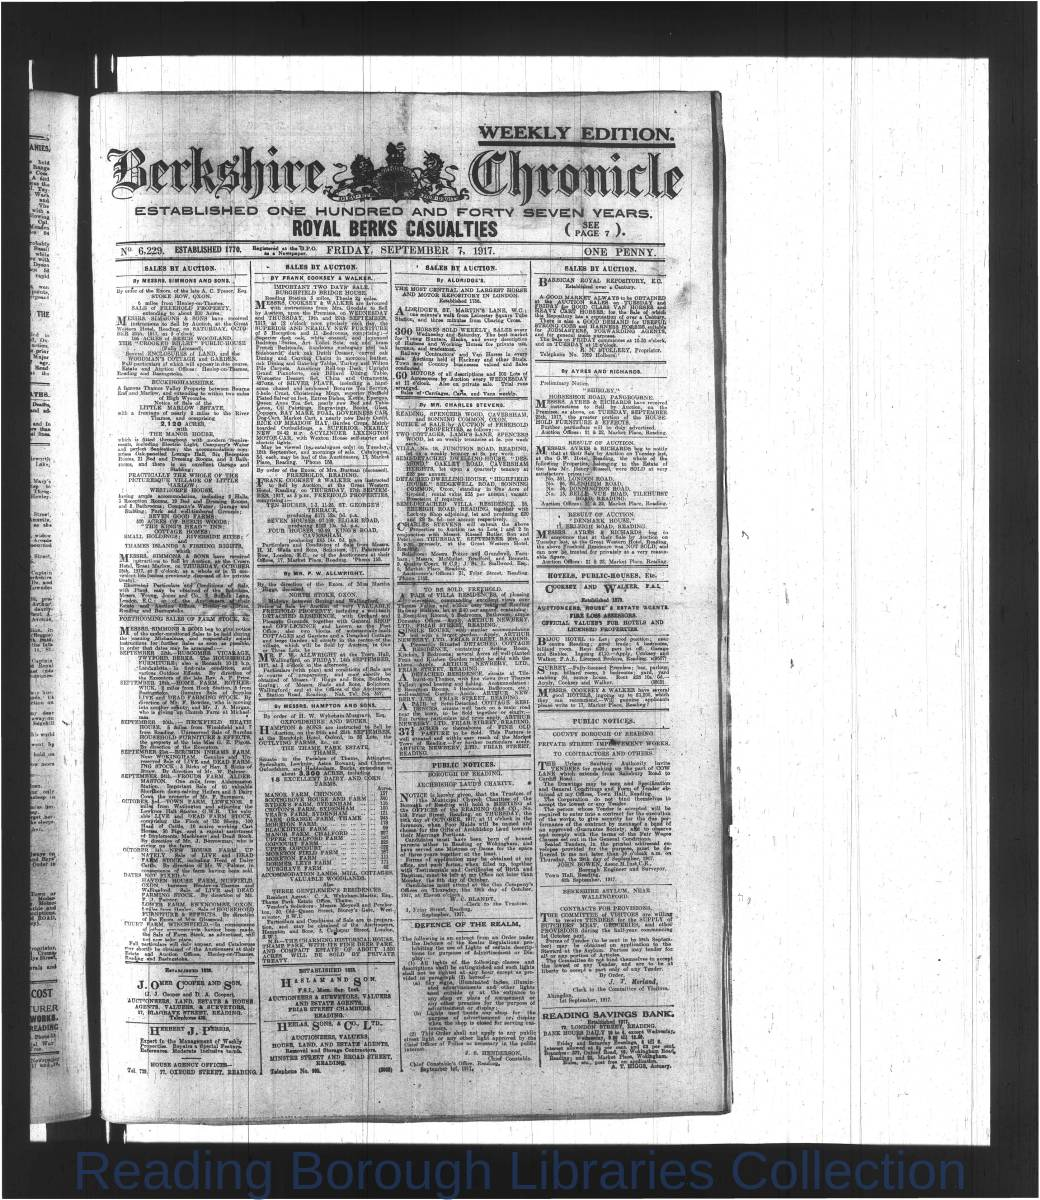 Berkshire Chronicle Reading_07-09-1917_00002.jpg